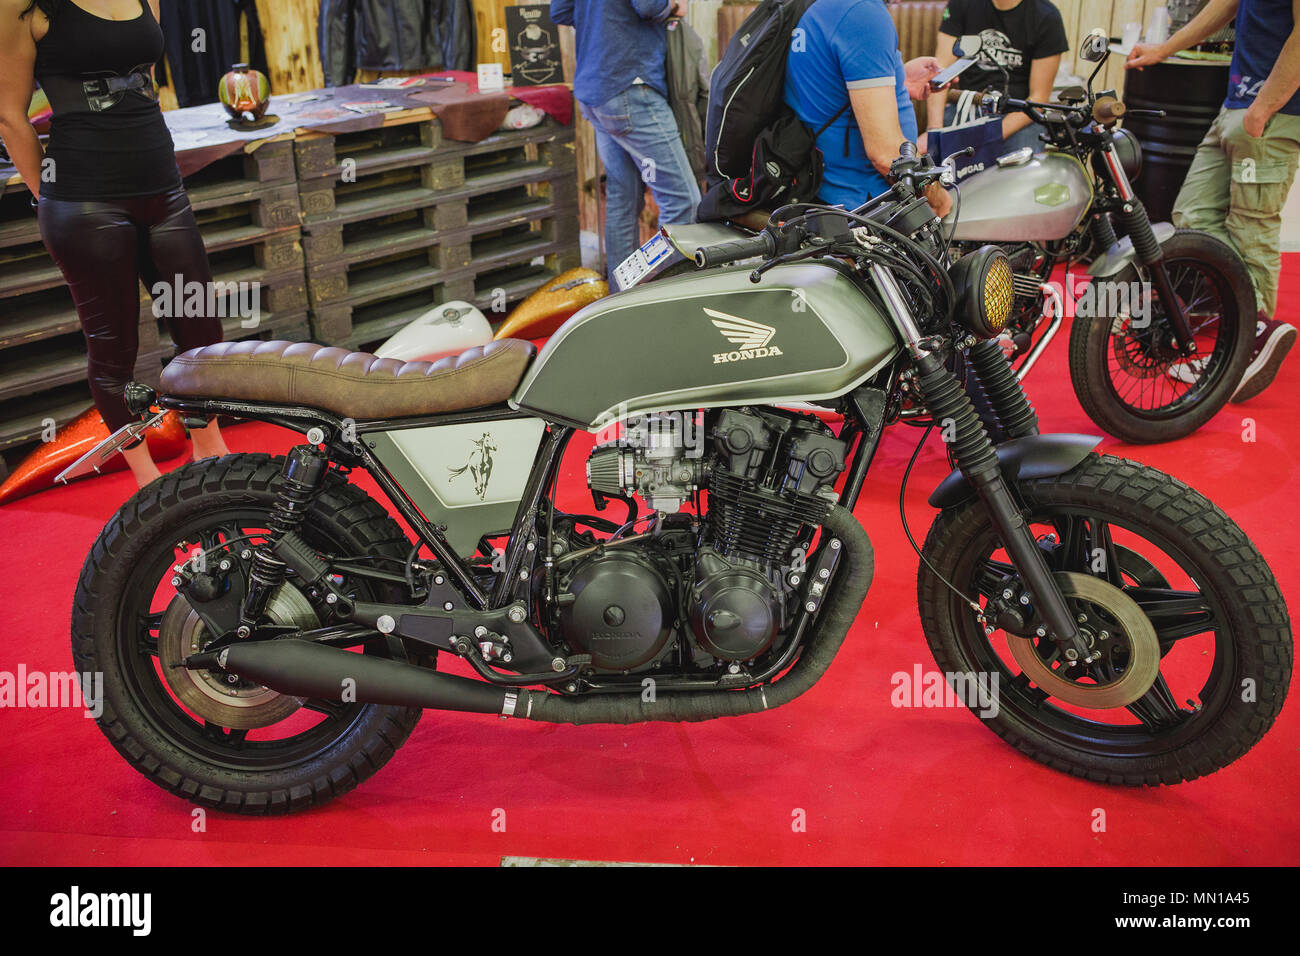 hight resolution of honda scrambler exhibited during the motor experience naples international auto and motorcycle exhibition credit ernesto vicinanza sopa images zuma